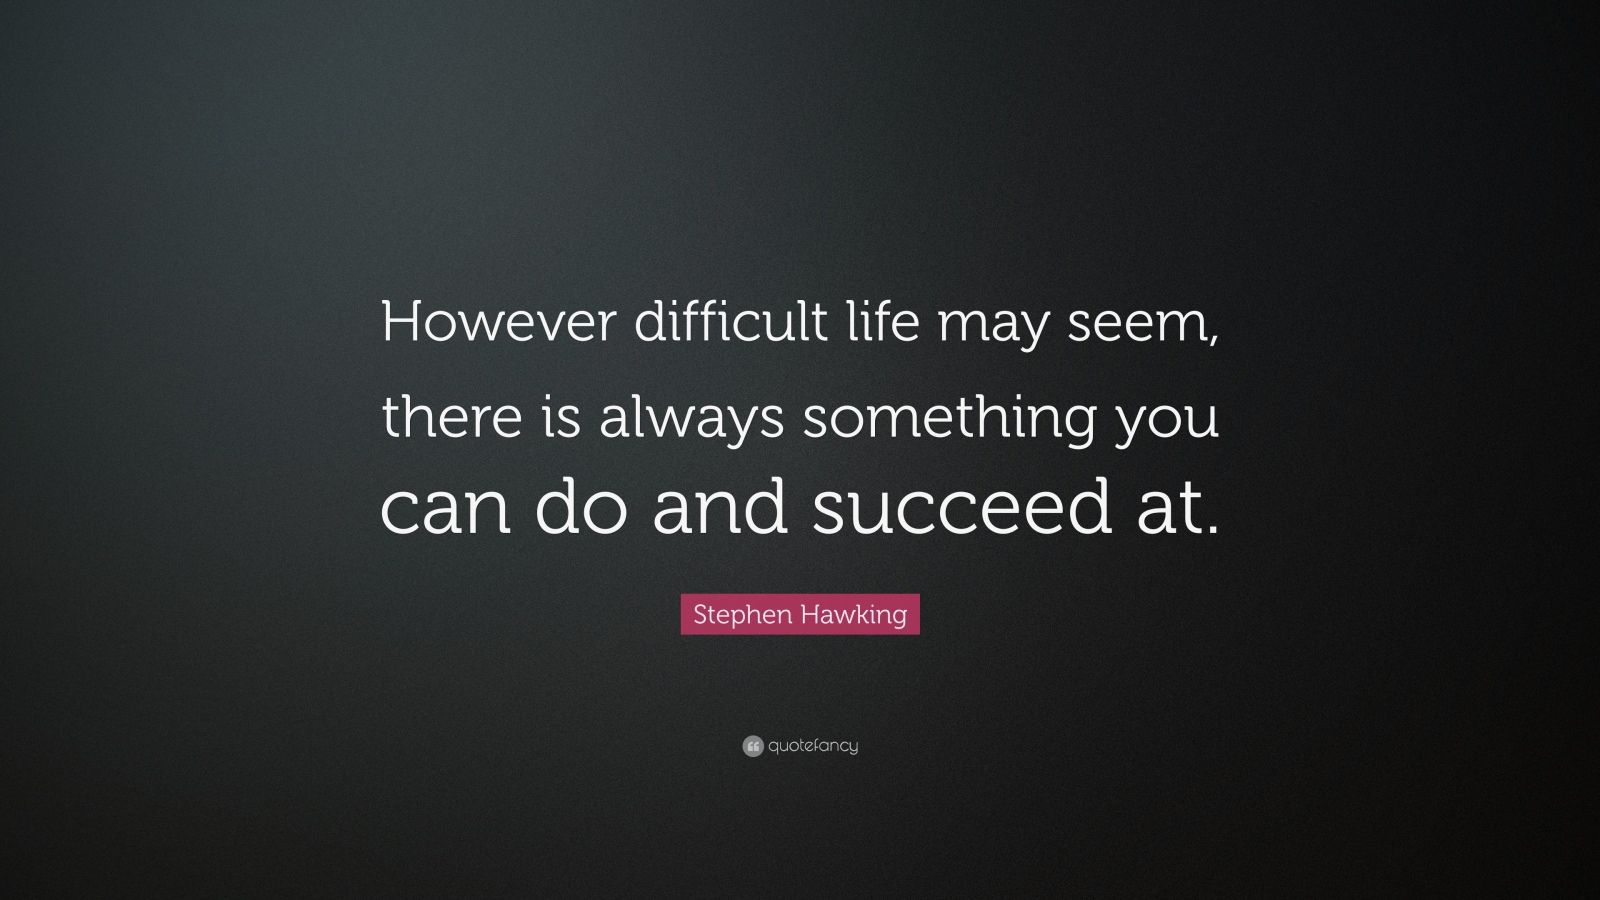 Benjamin Franklin Quotes Wallpaper Stephen Hawking Quote However Difficult Life May Seem